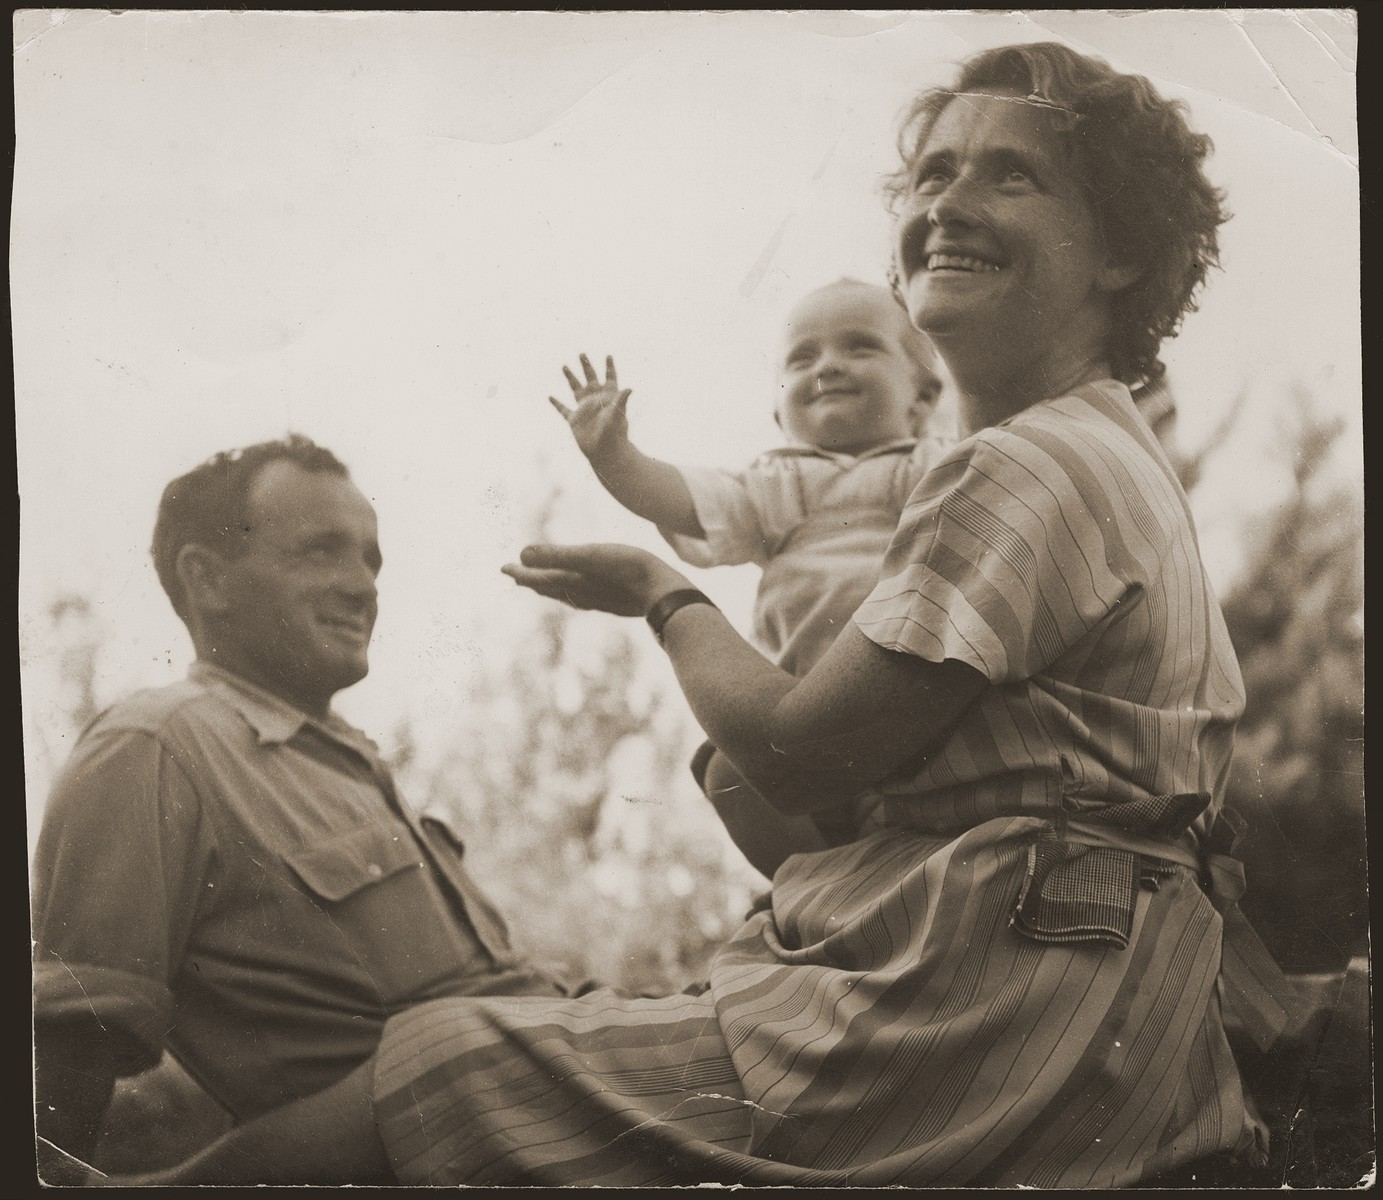 Haika Grosman relaxes with her husband, Meir Orkin, and daughter, Leah, on Kibbutz Evron.